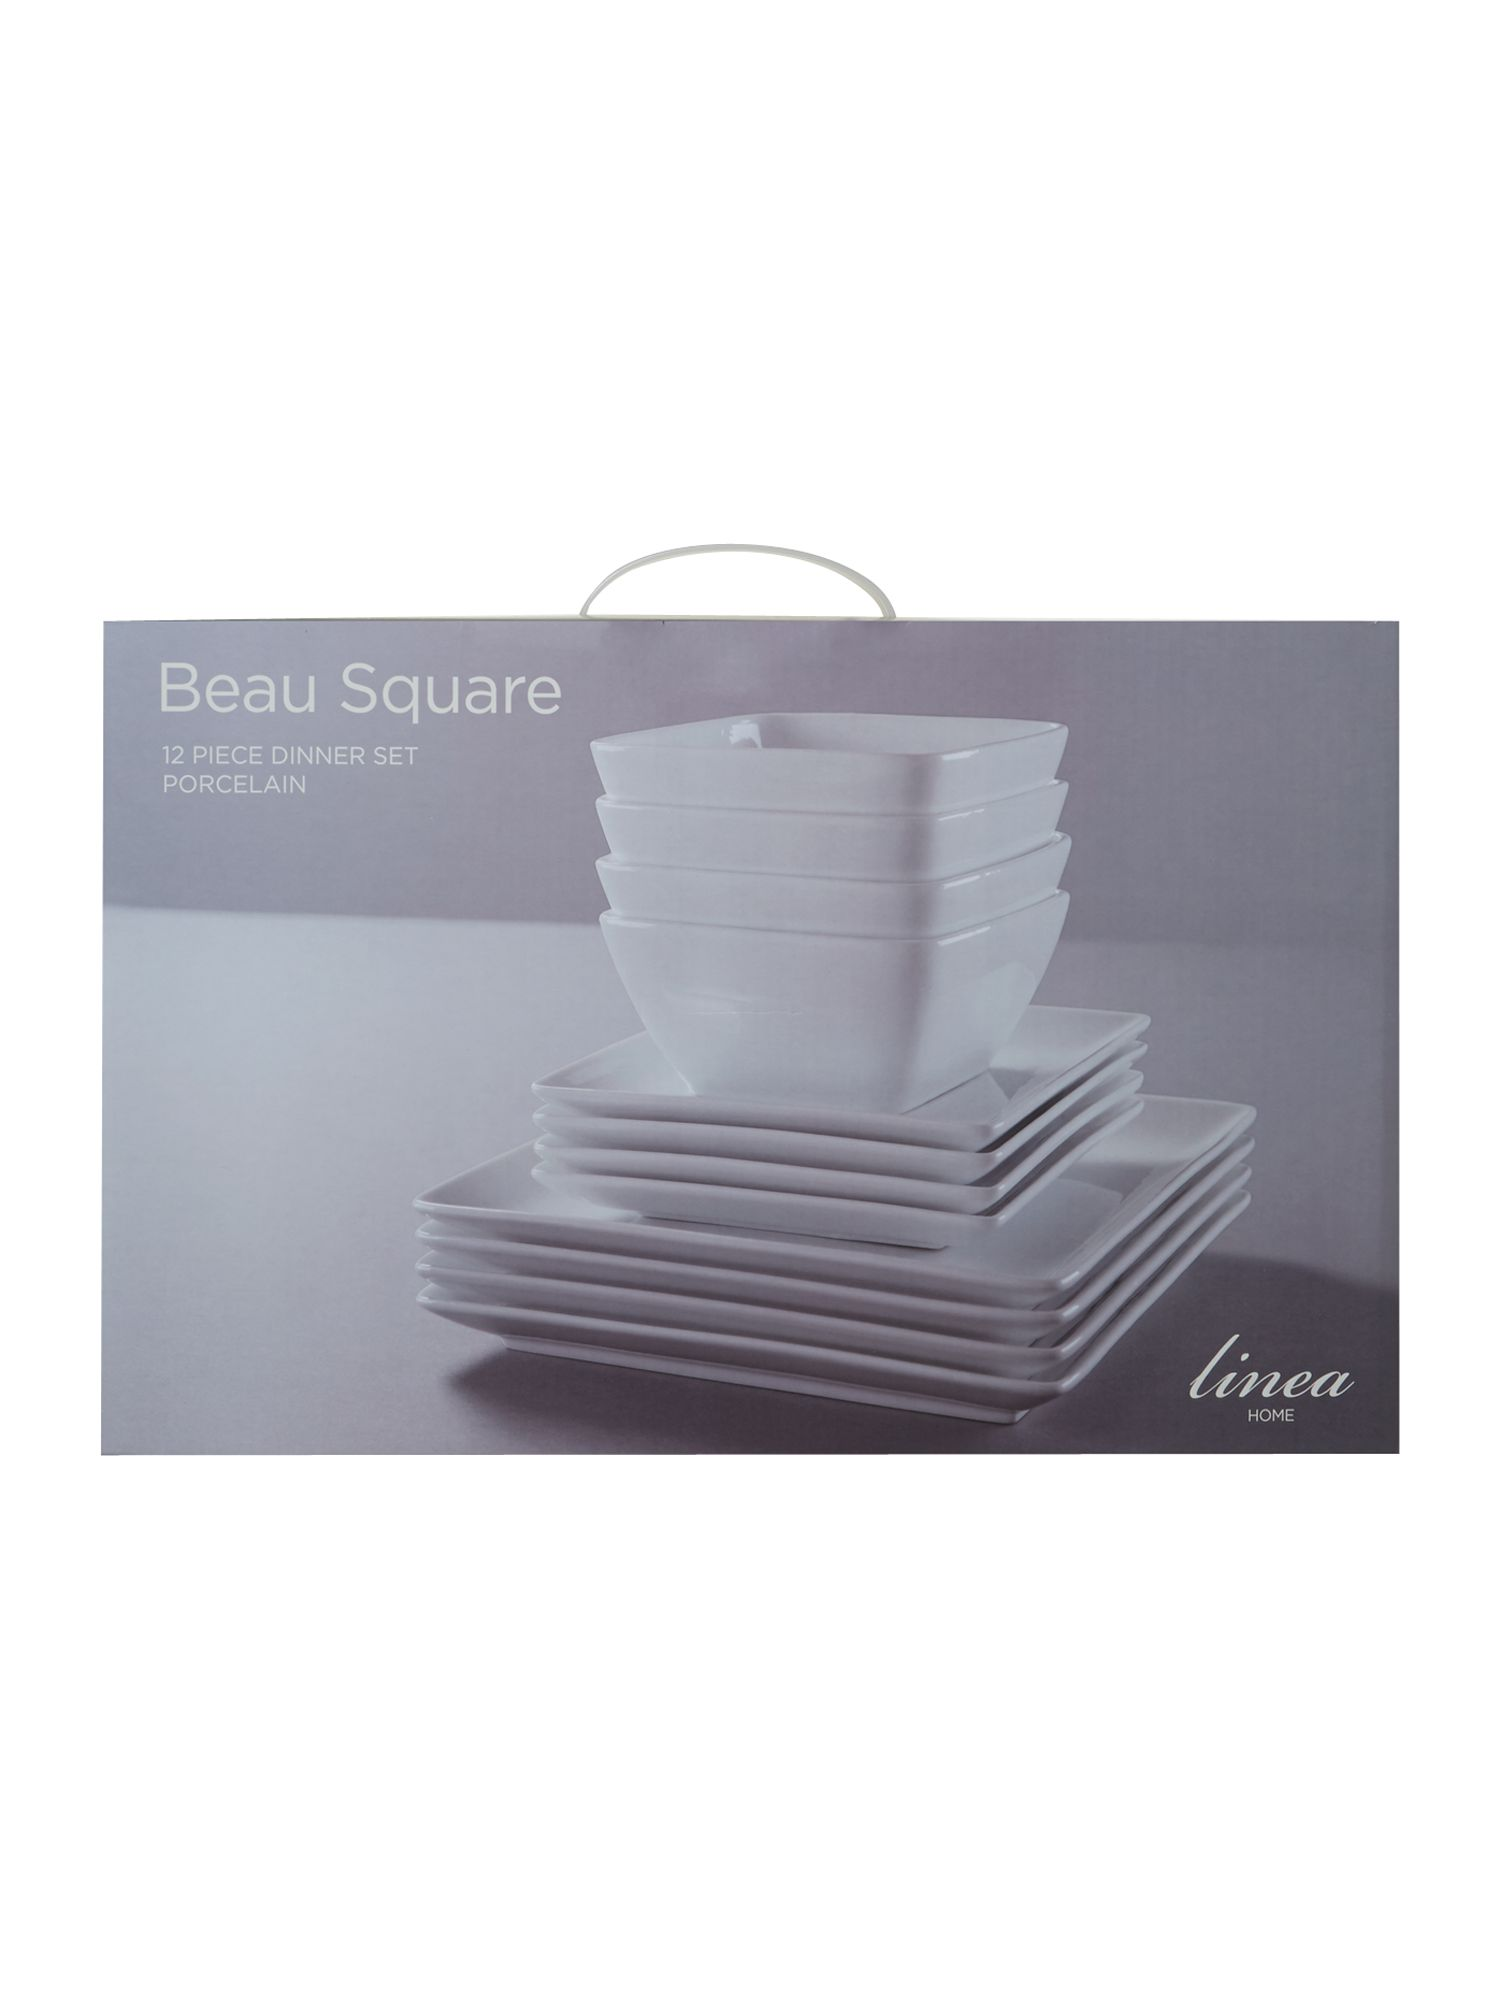 Beau square 12pc box set